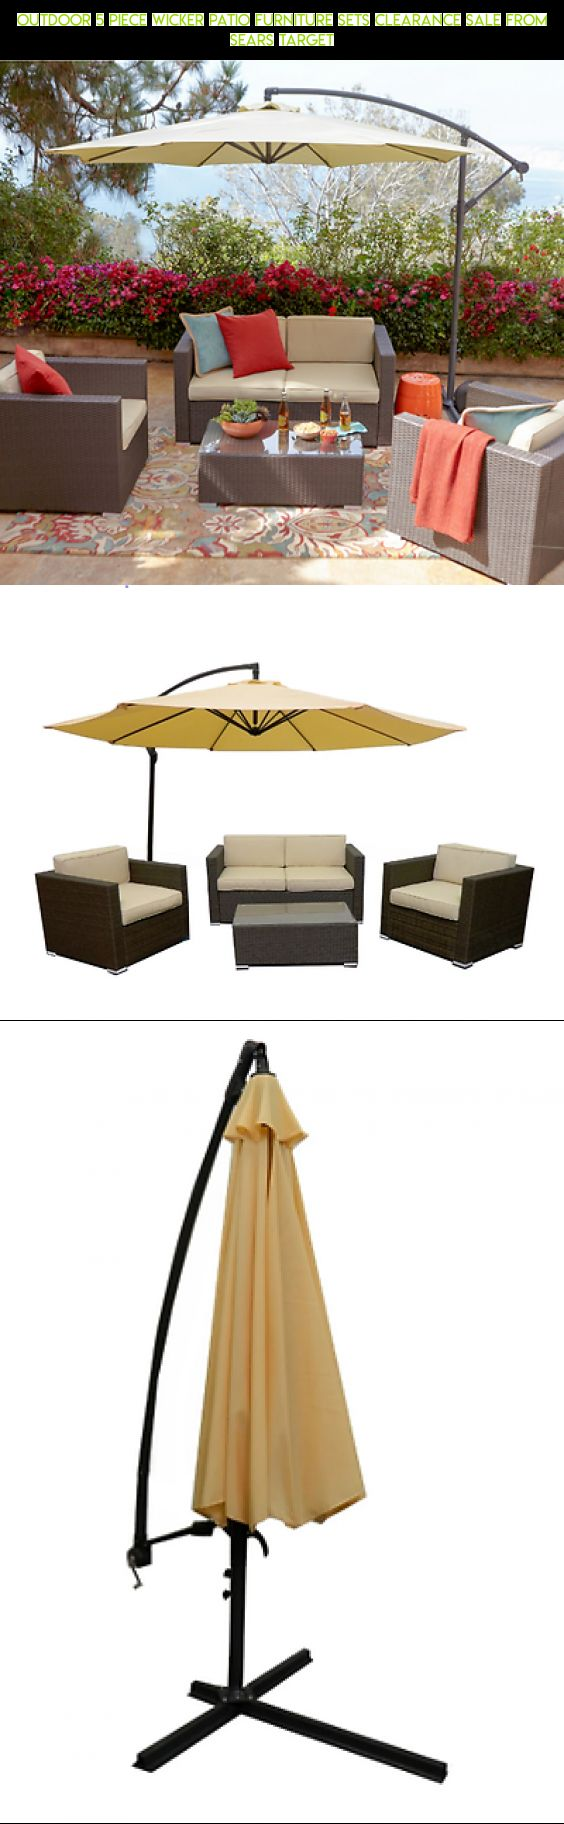 outdoor 5 piece wicker patio furniture sets clearance sale from sears target fpv shopping - Patio Furniture Clearance Sale